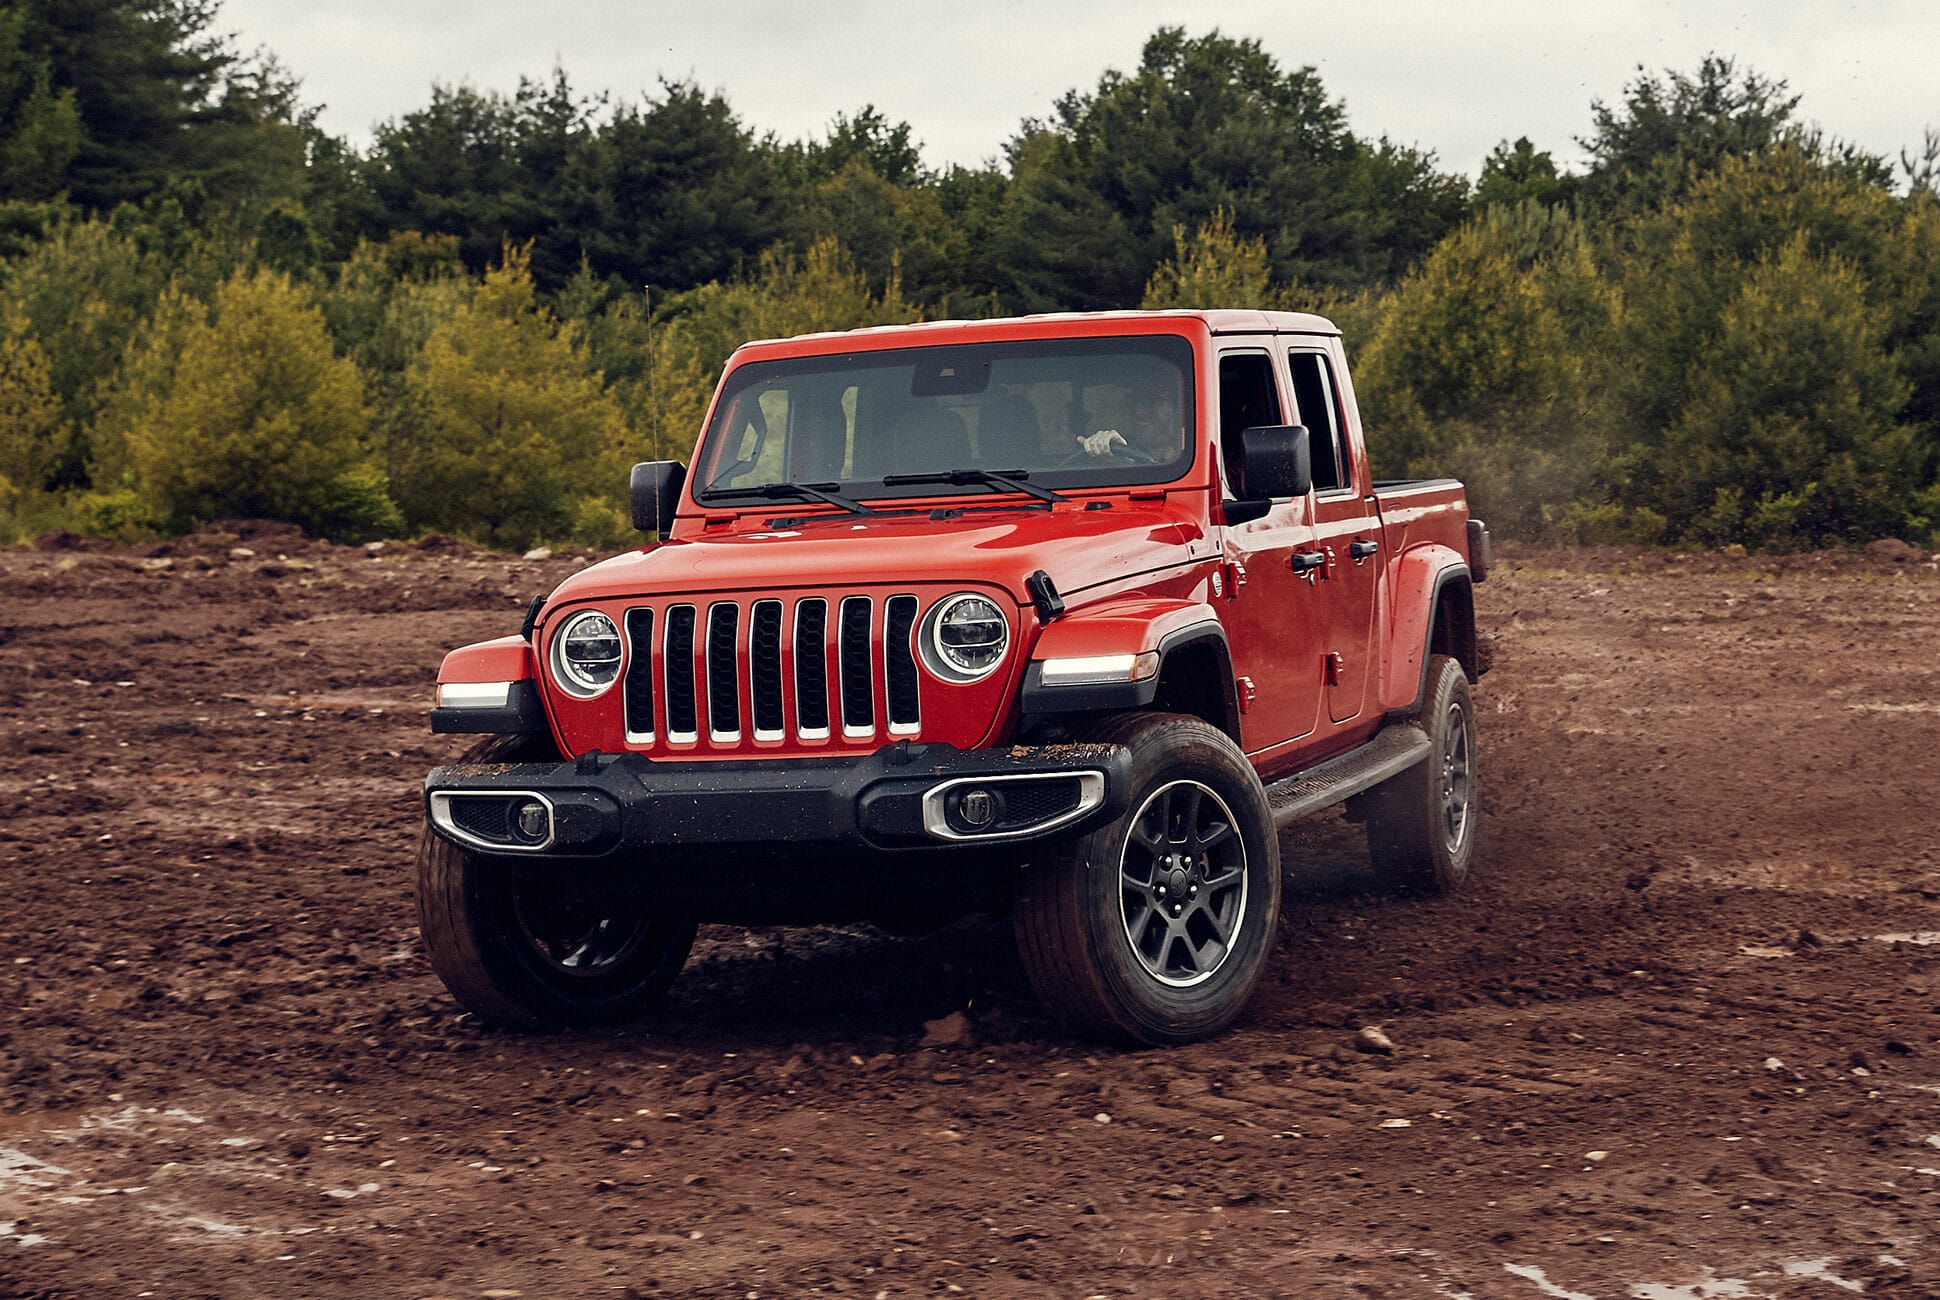 2020 Jeep Gladiator Review A Truck For The People Gear Patrol